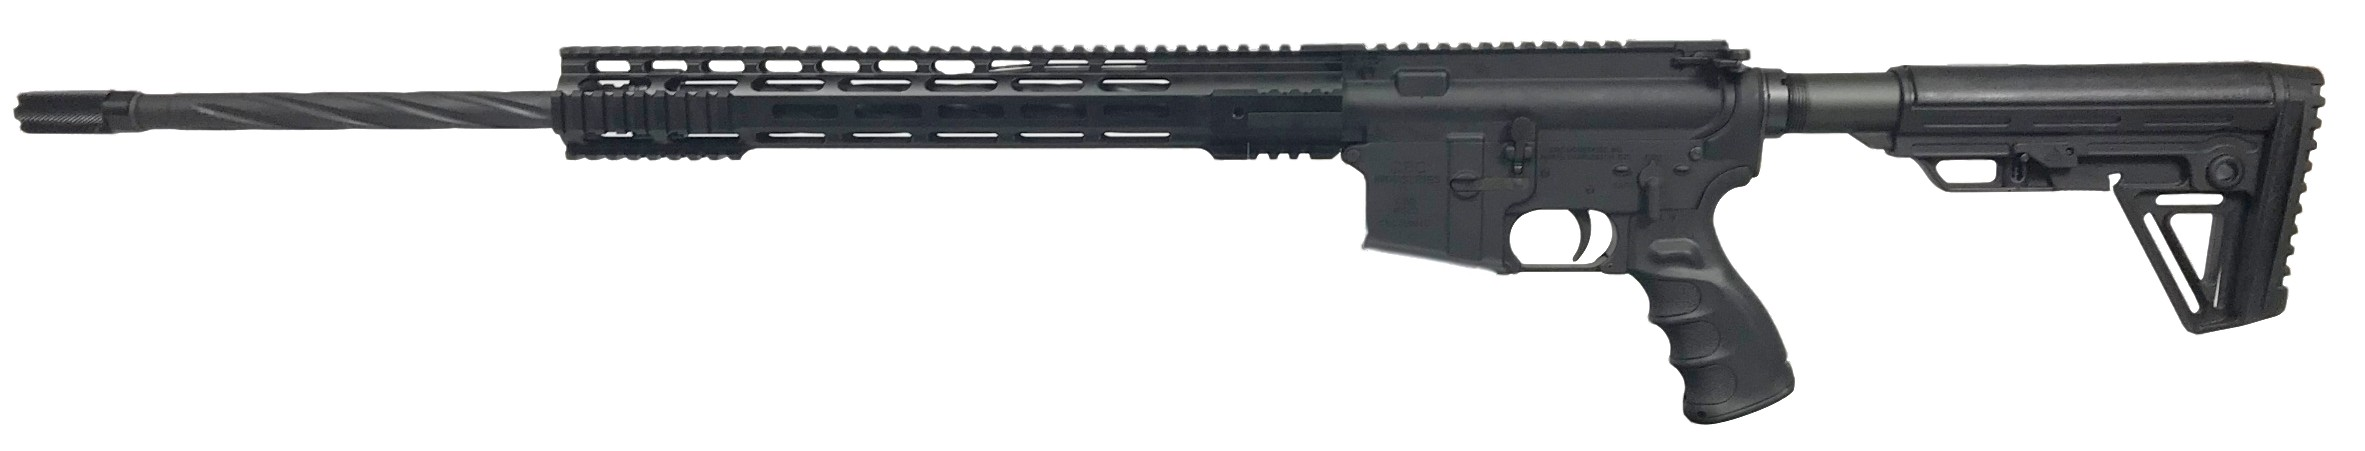 ar 15 complete rifle cbc industries 24 inch 223 wylde m lock lightweight rifle